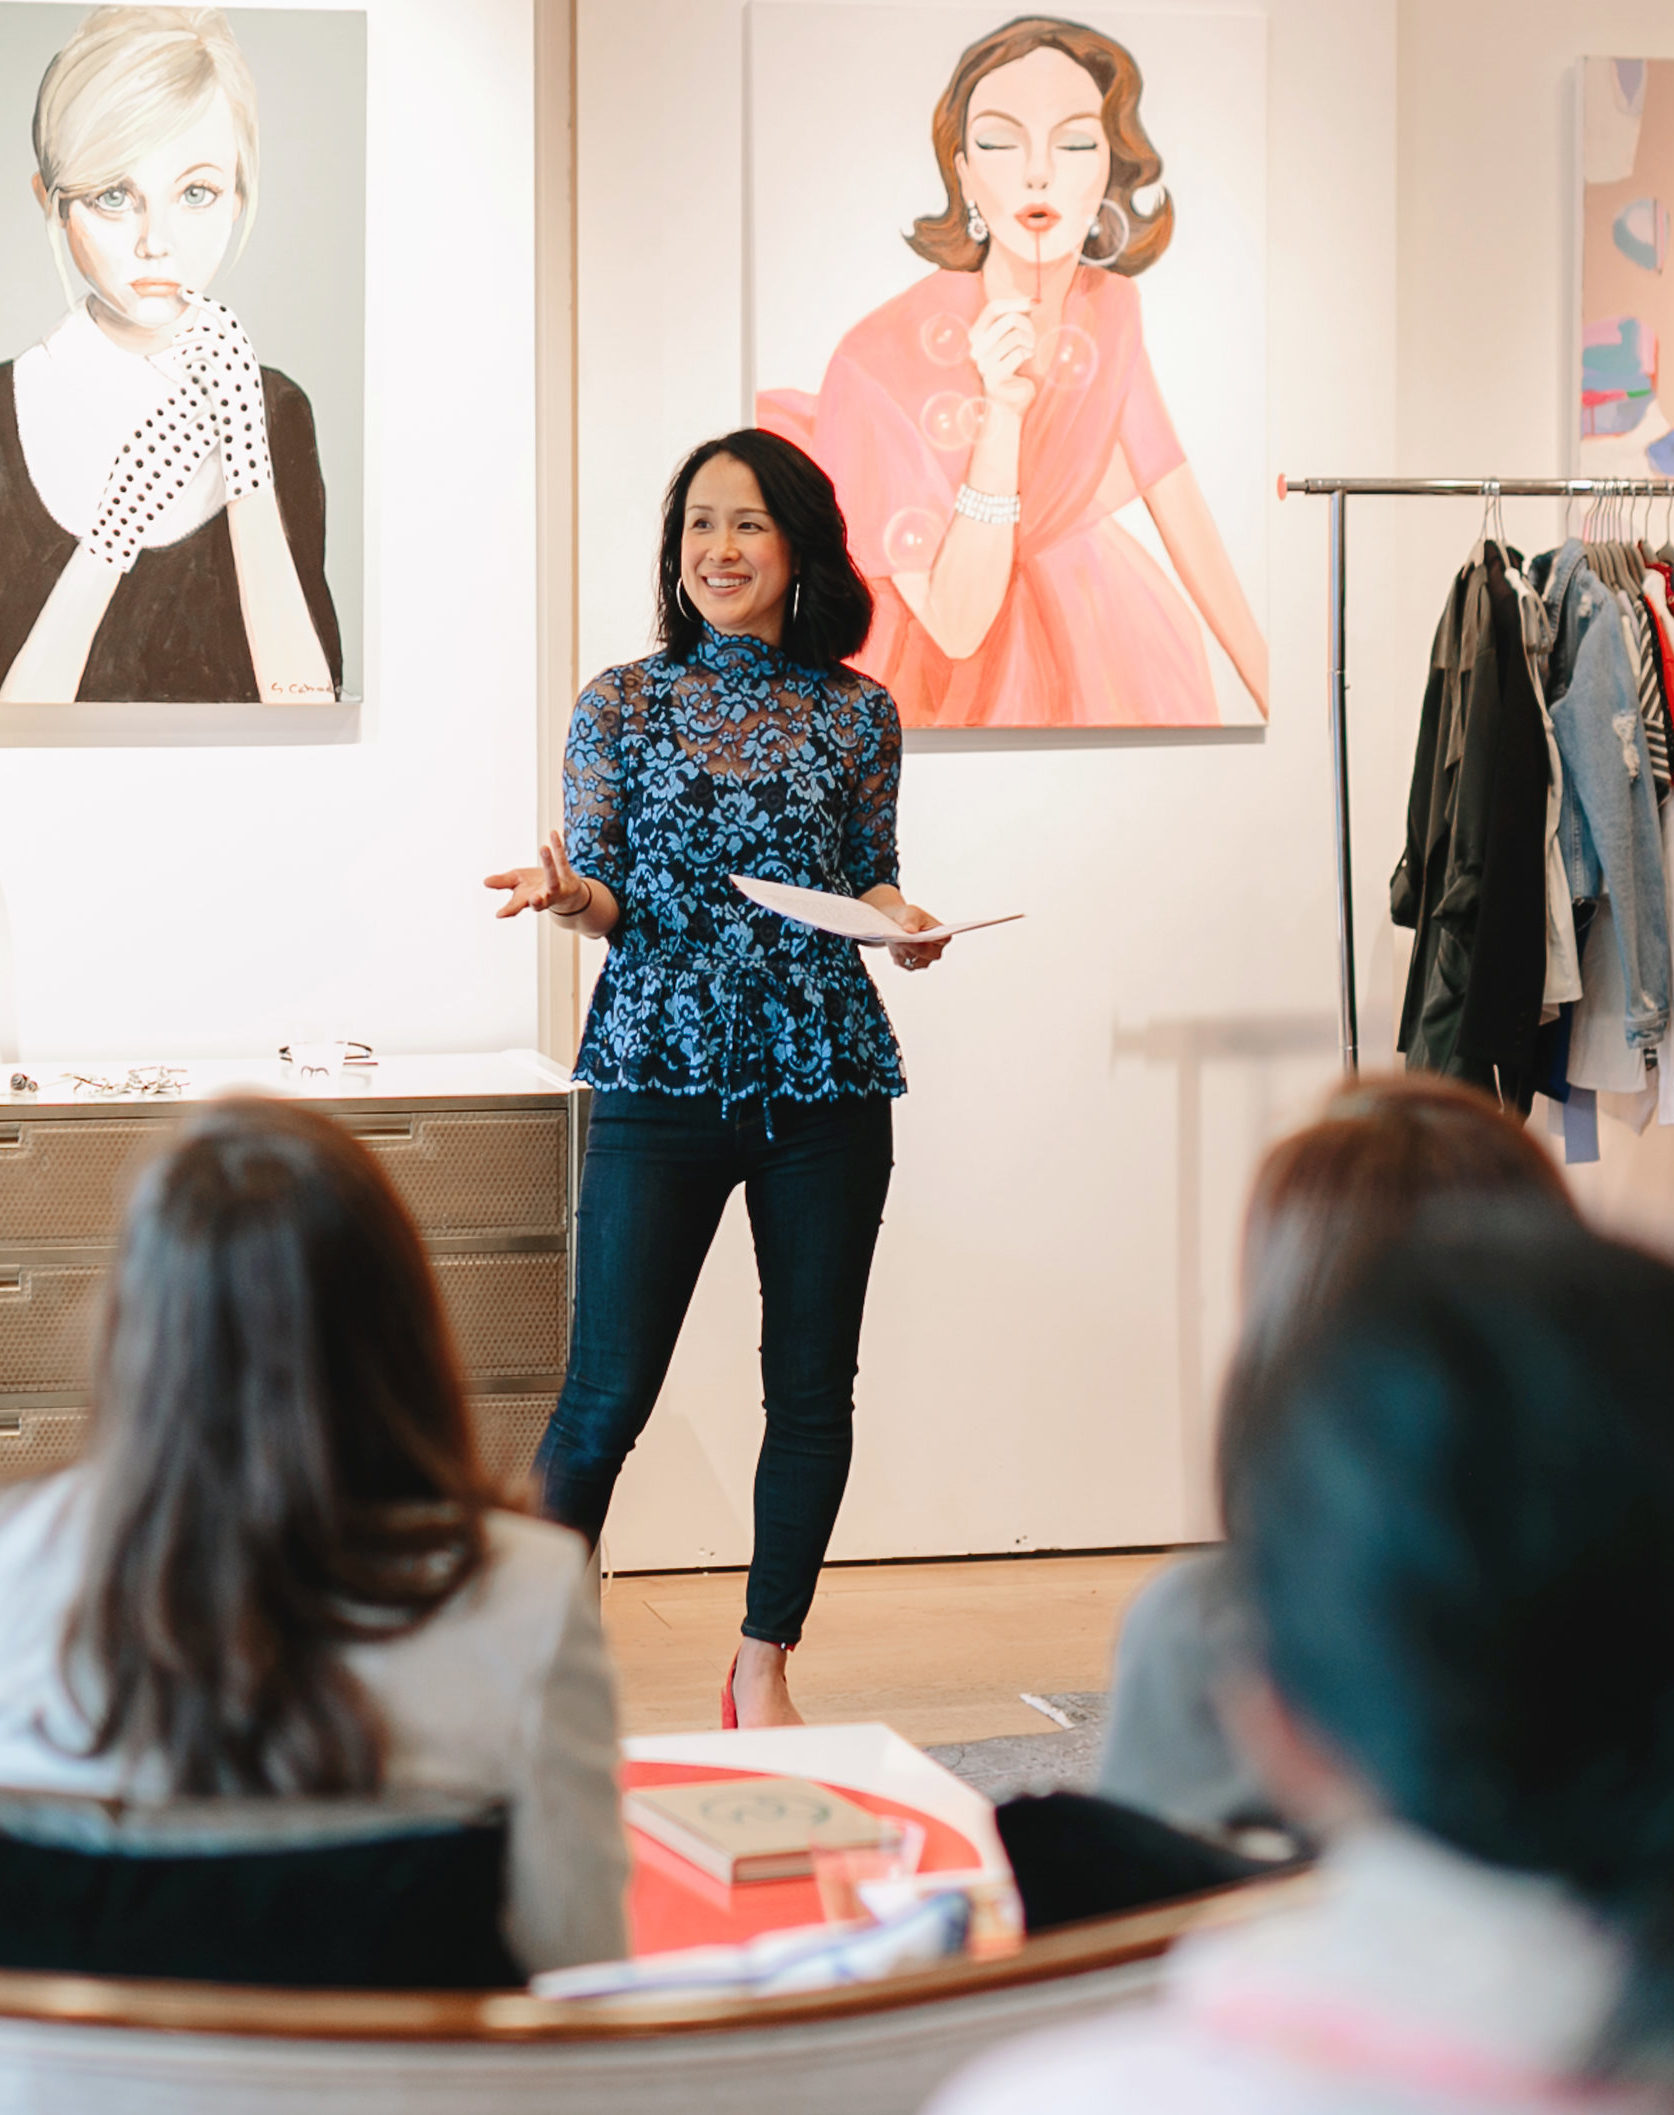 Style Workshop: Building a Capsule Wardrobe